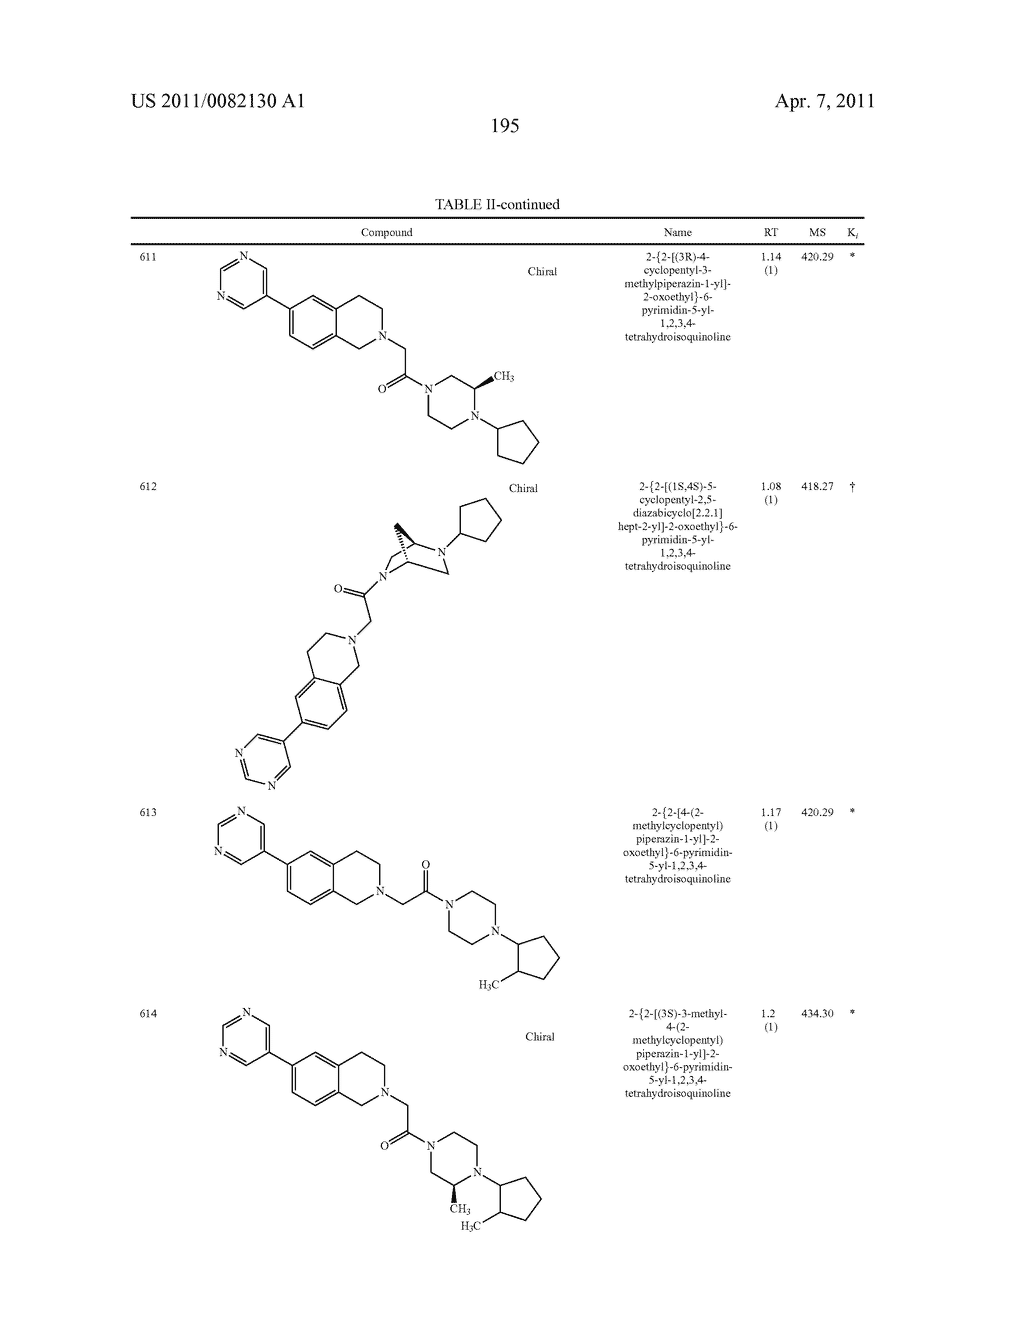 PIPERAZINYL OXOALKYL TETRAHYDROISOQUINOLINES AND RELATED ANALOGUES - diagram, schematic, and image 196